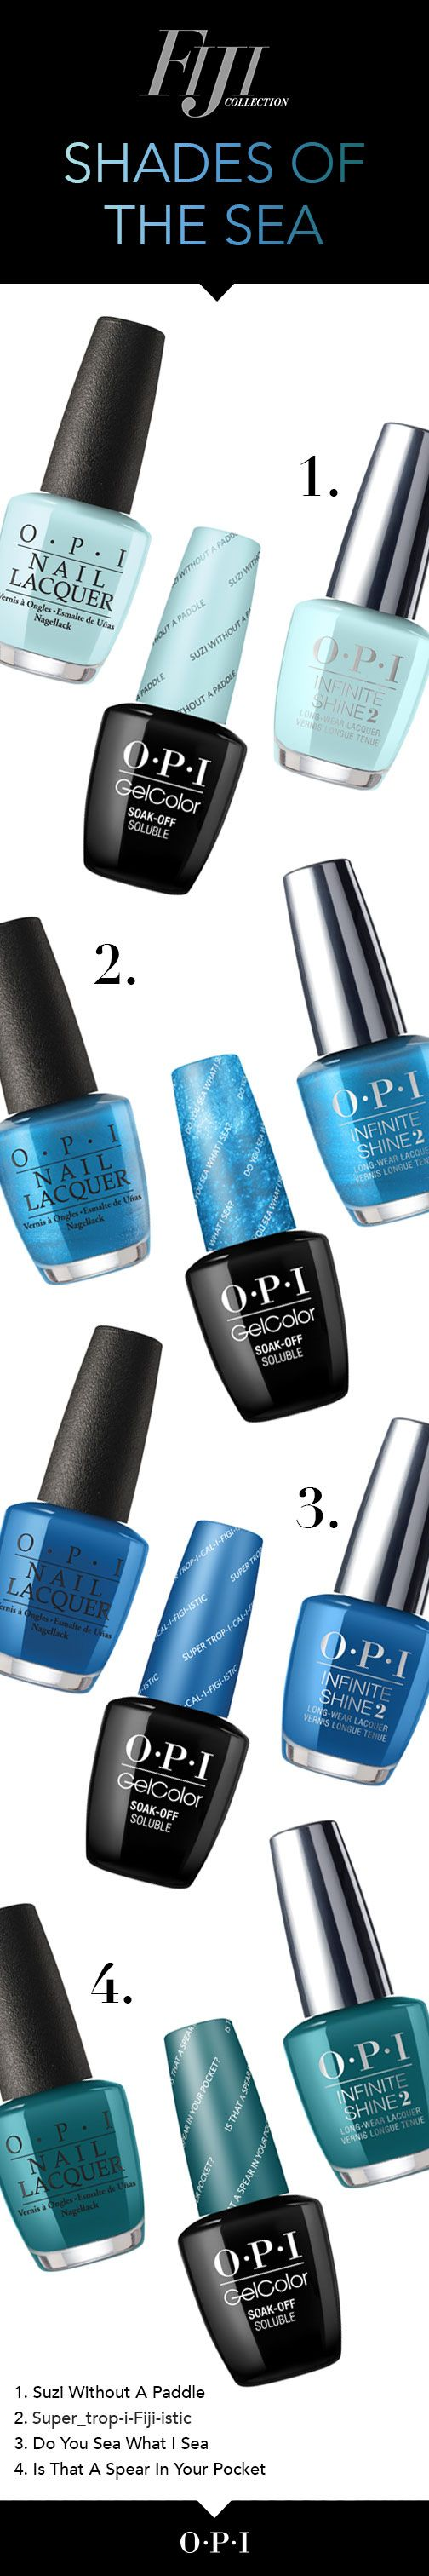 OPI Fiji Collection - Shades of the Sea